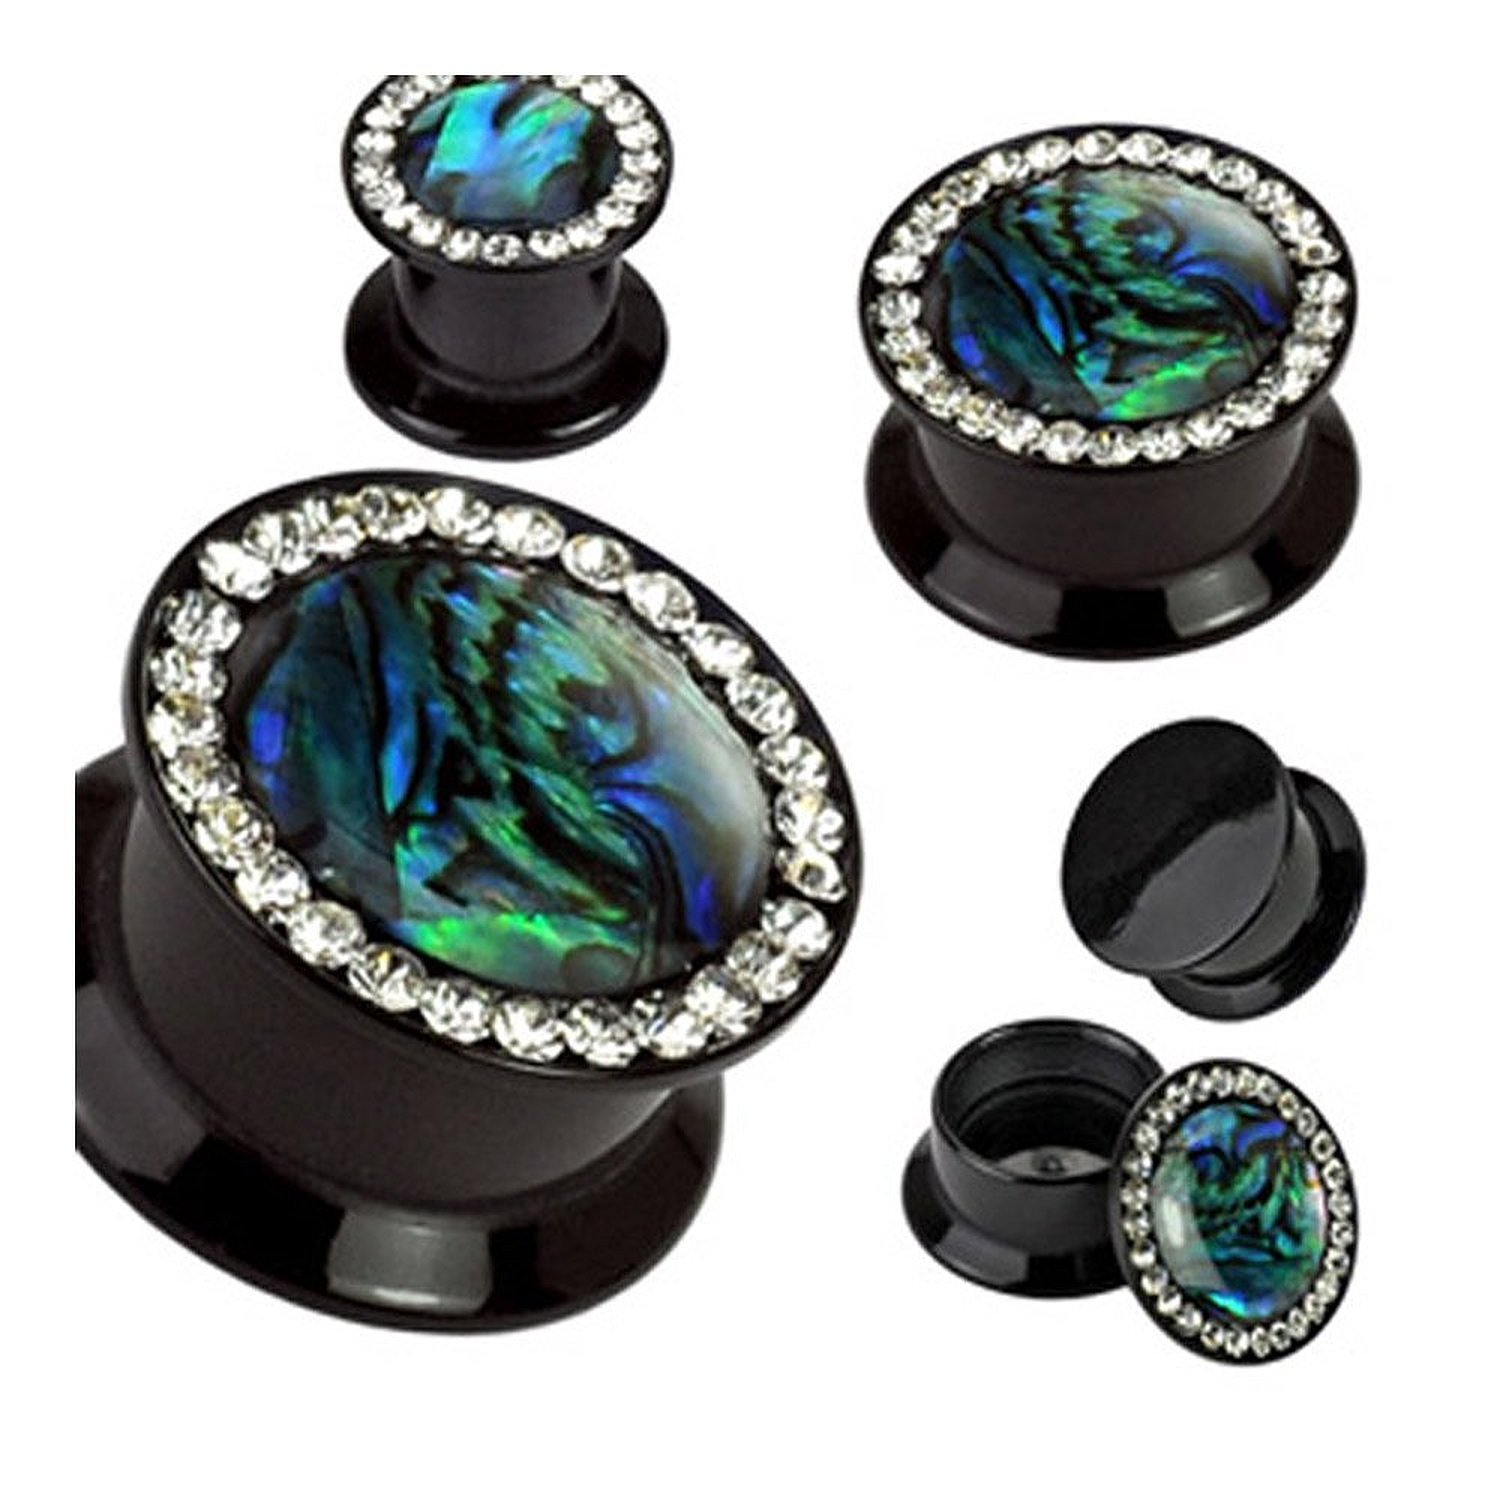 Inspiration Dezigns Black Agate Semi Precious Stone Domed Single Flare Plugs with O-Ring Sold As Pairs